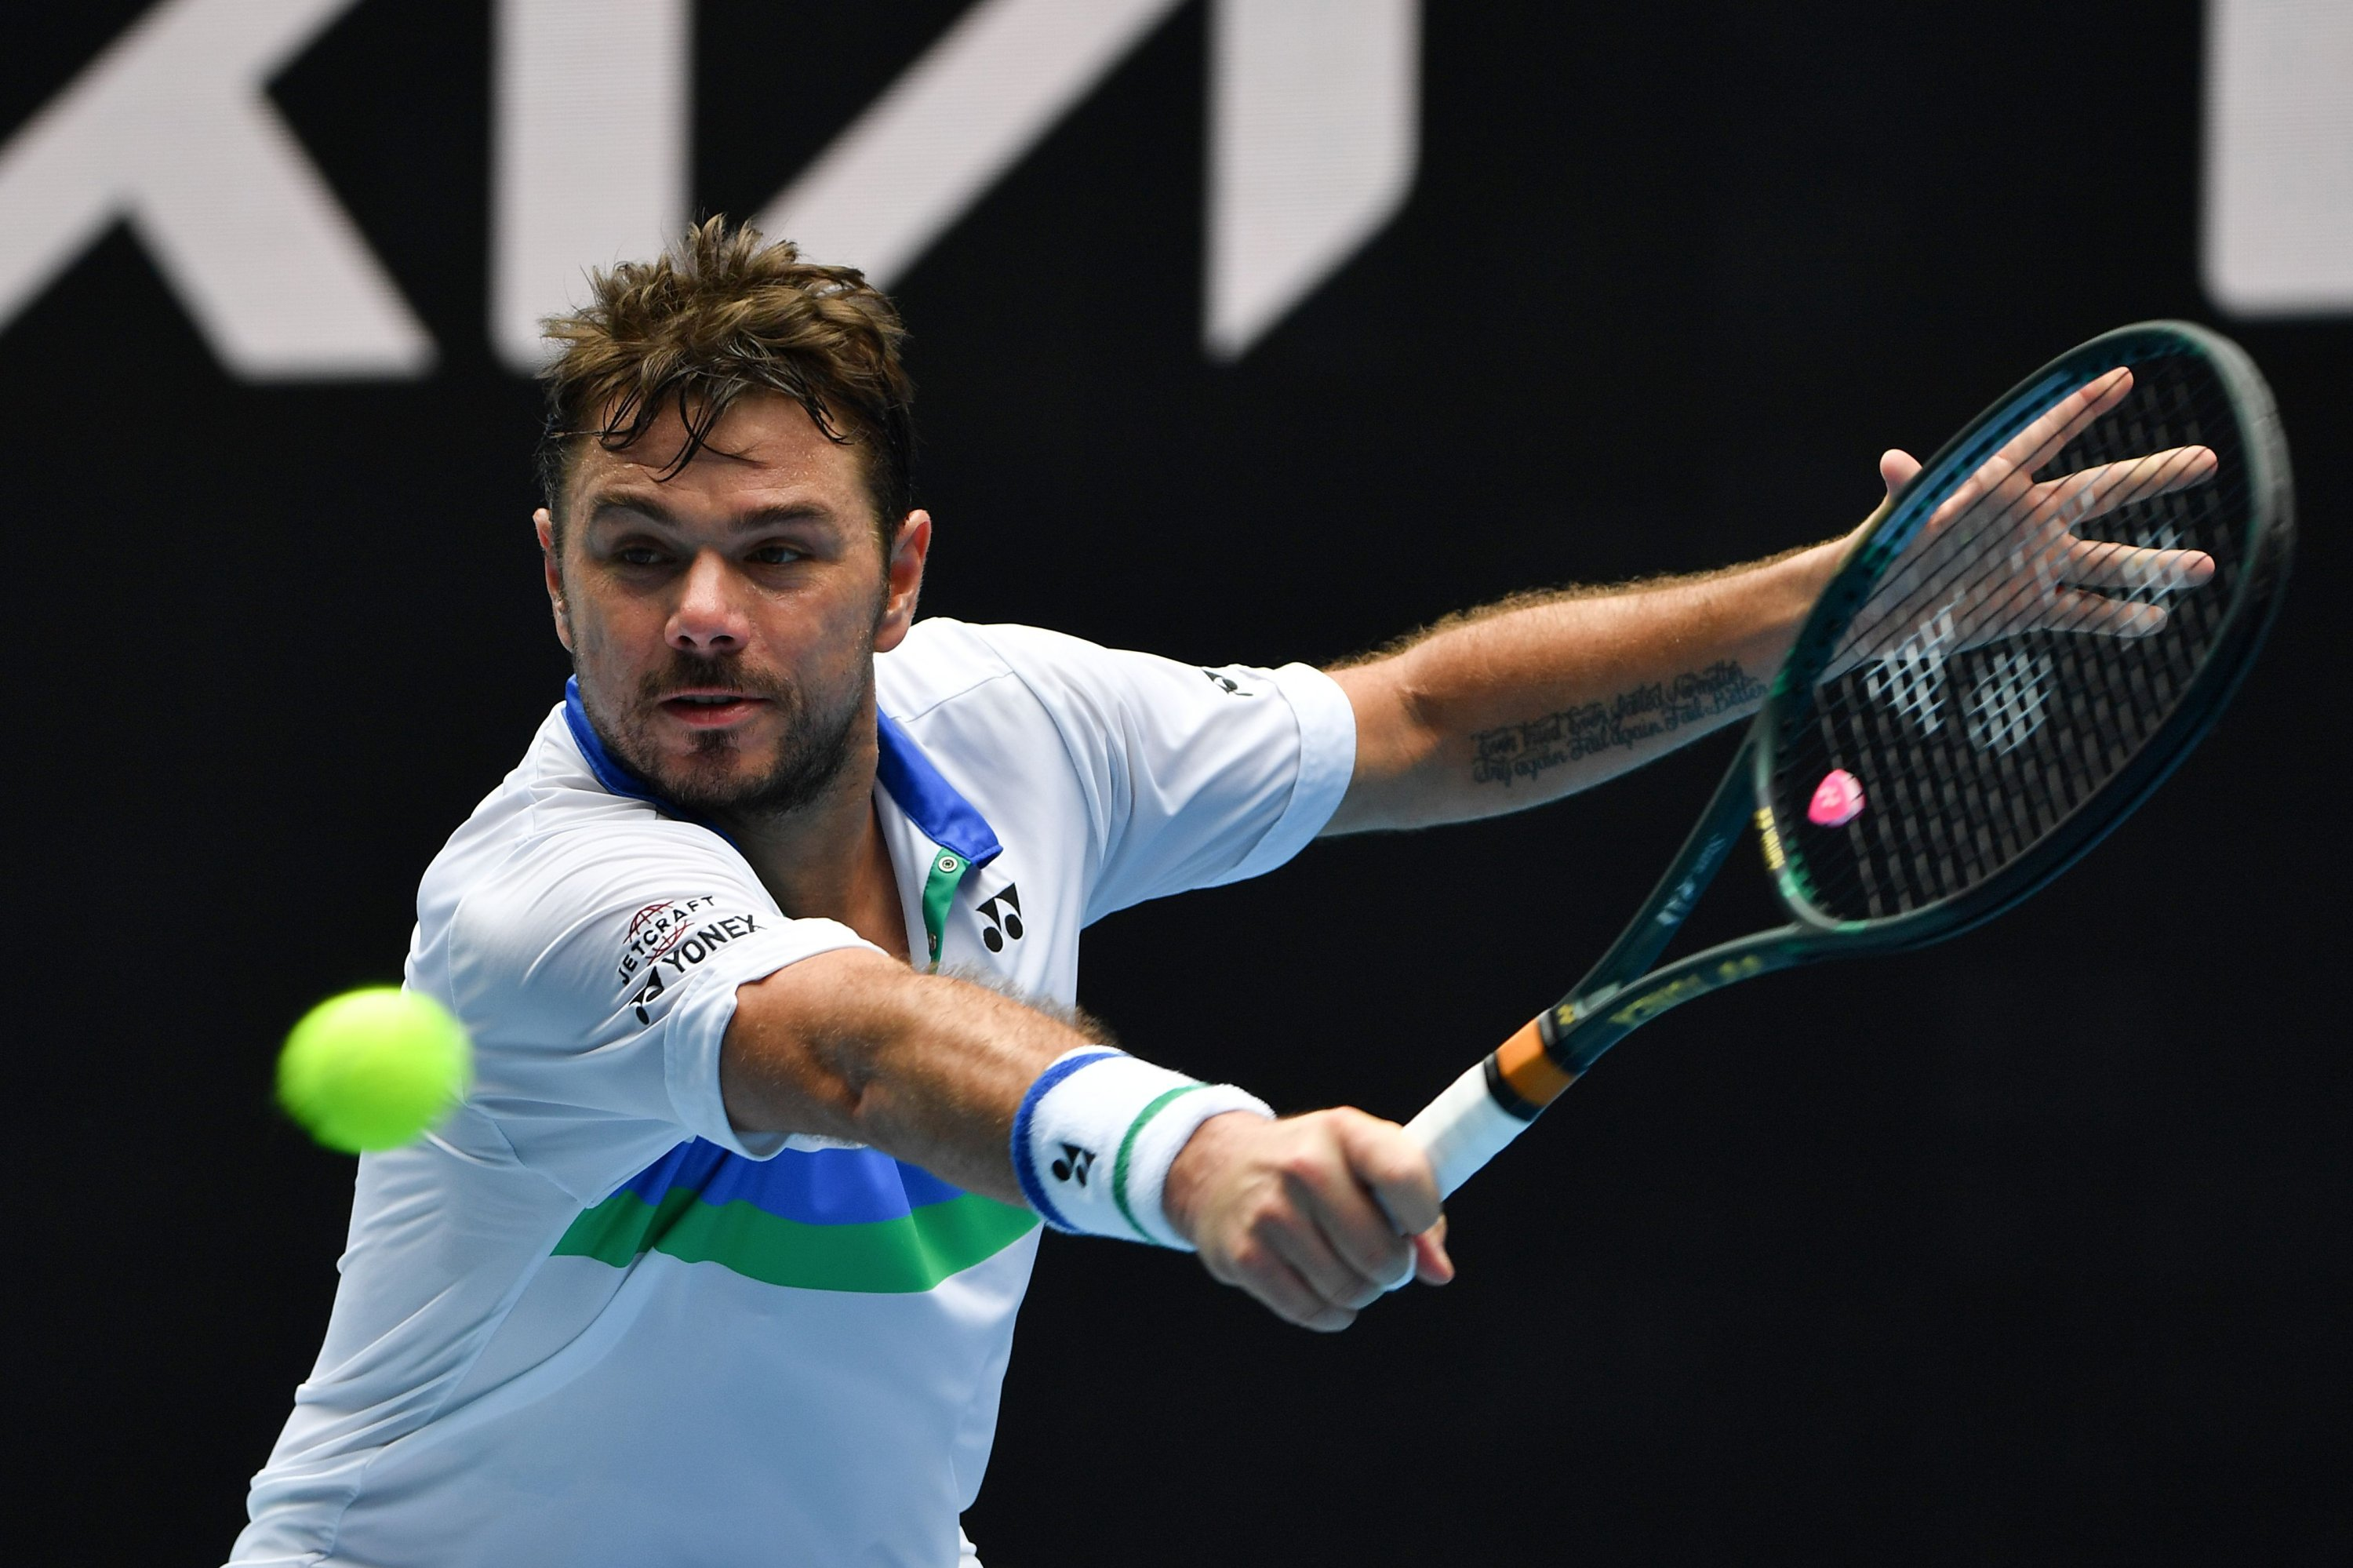 Switzerland's Stan Wawrinka hits a return against Portugal's Pedro Sousa during their first-round Australian Open match, Melbourne, Australia, Feb. 8, 2021. (AFP Photo)